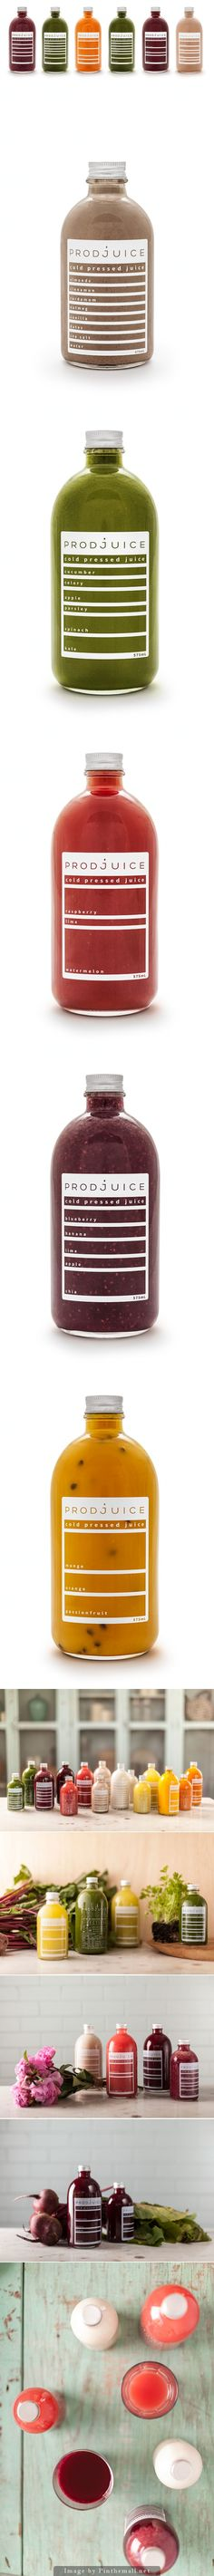 Prodjuice: A Cold Pressed Juice